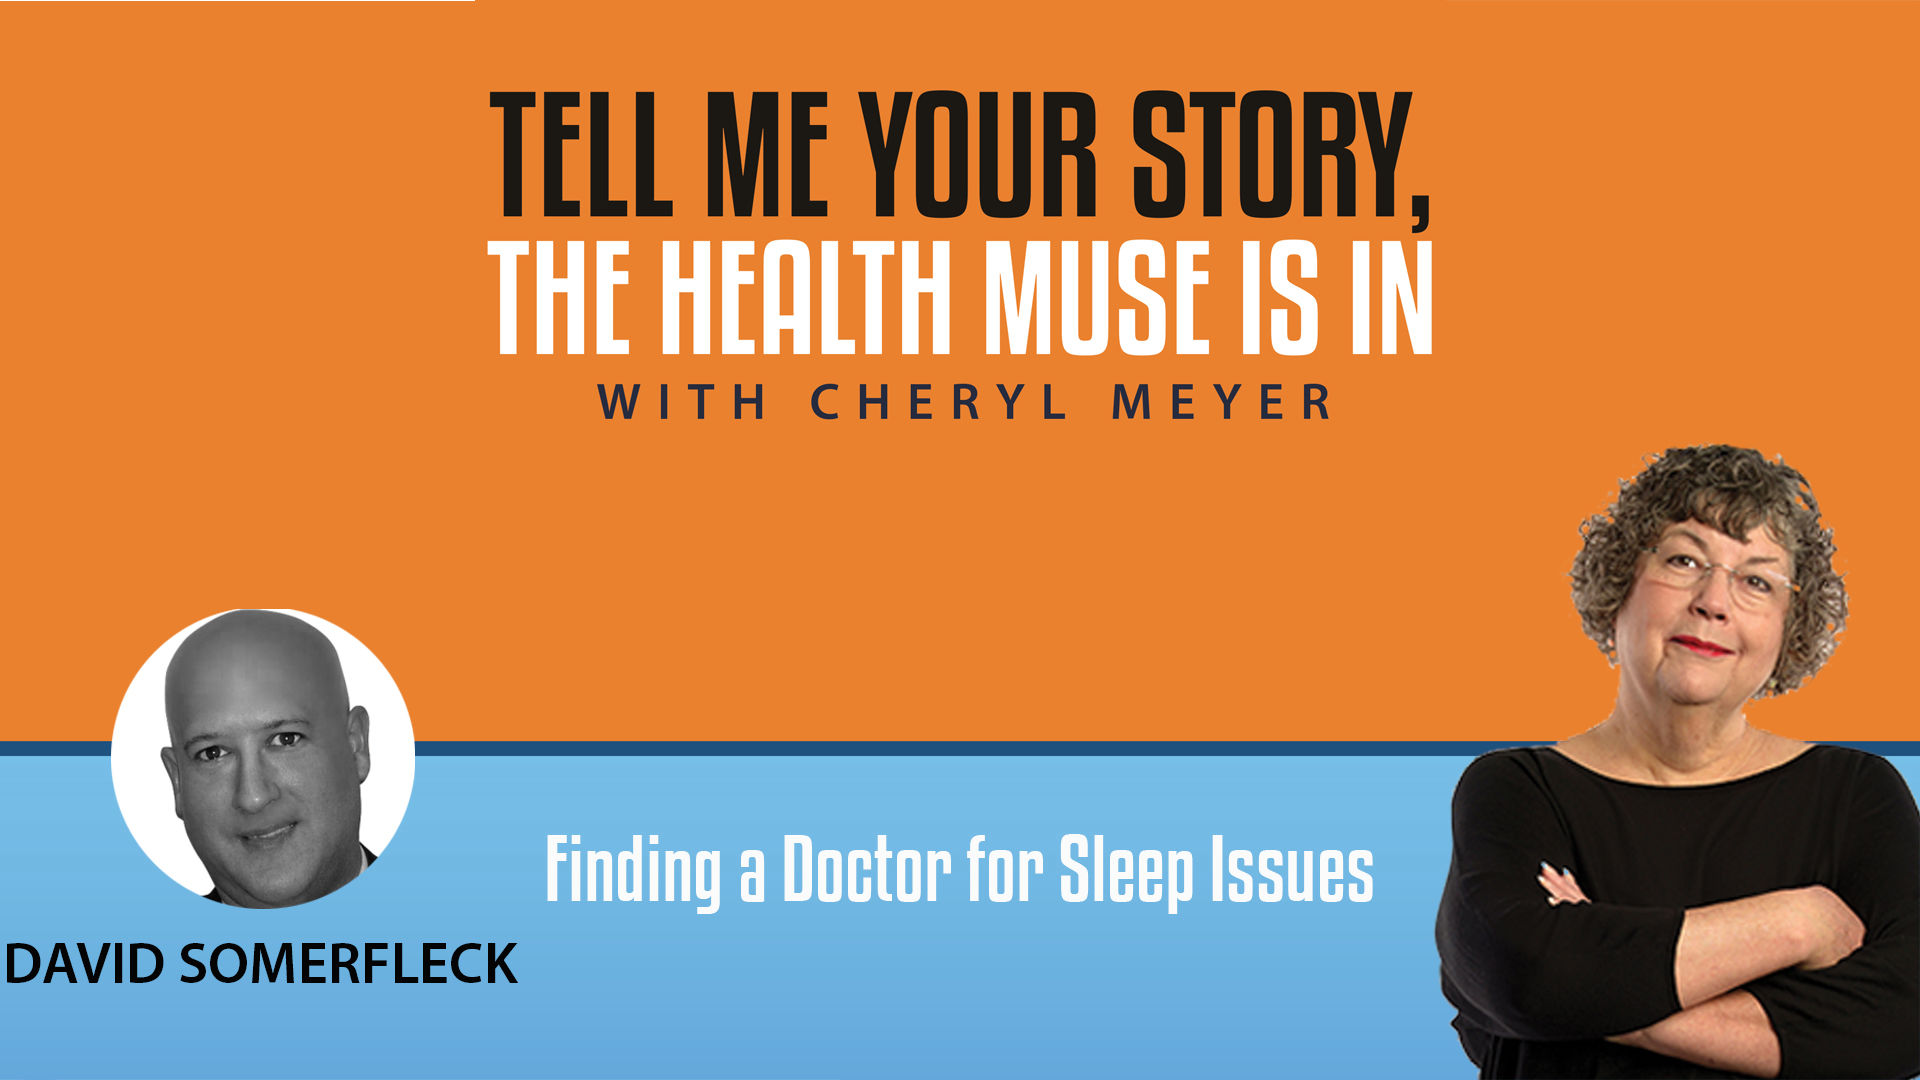 Tell Me Your Story David Somerfleck-Finding a Doctor for Sleep Problems